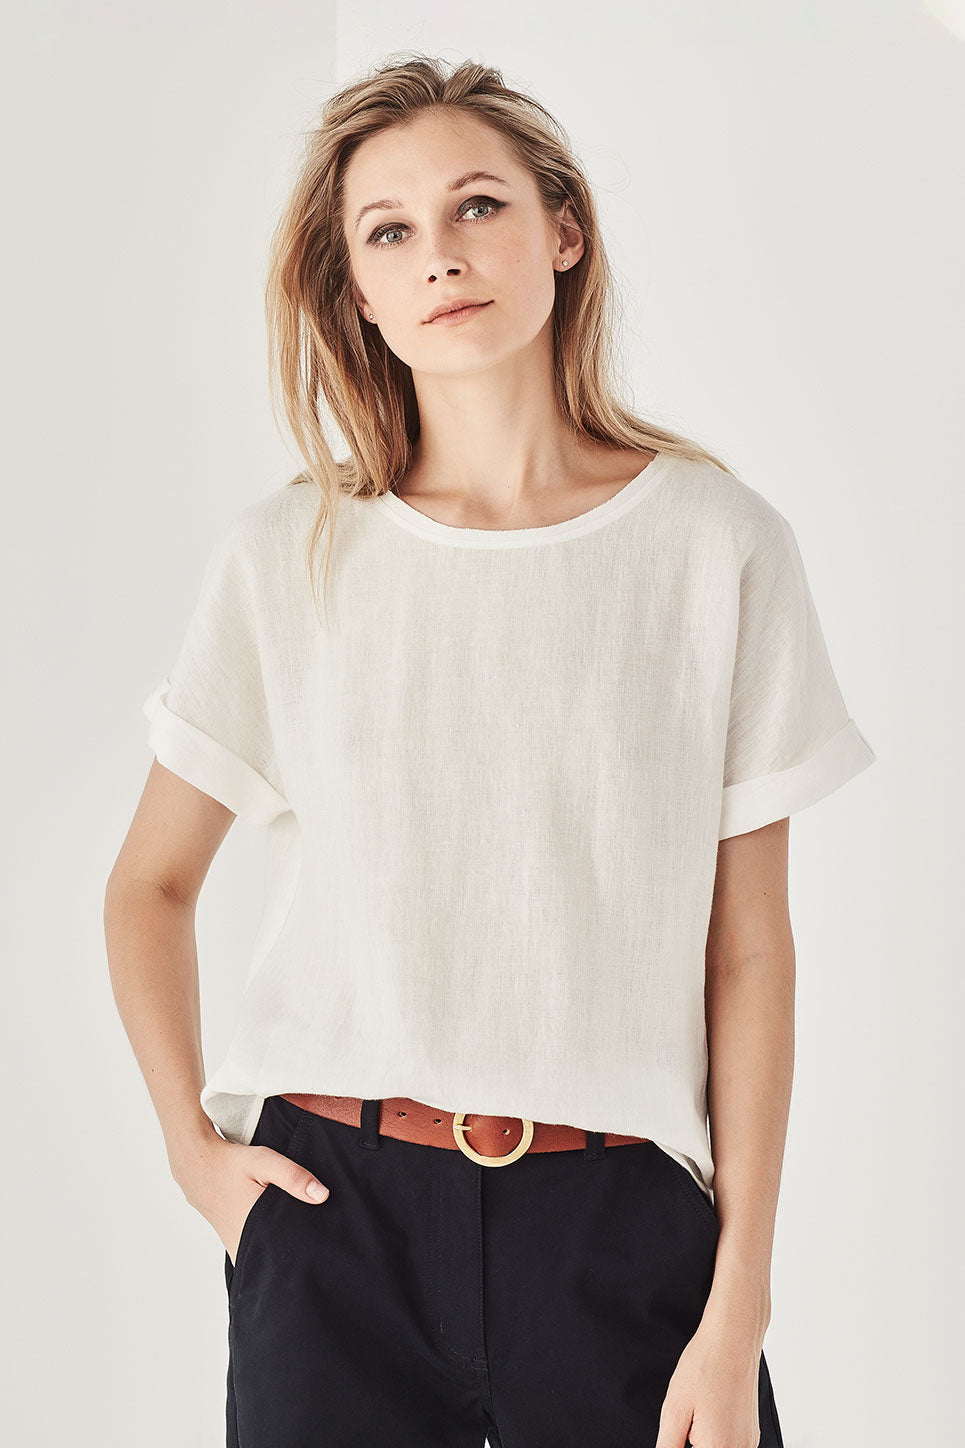 The Essence Tee in Ivory